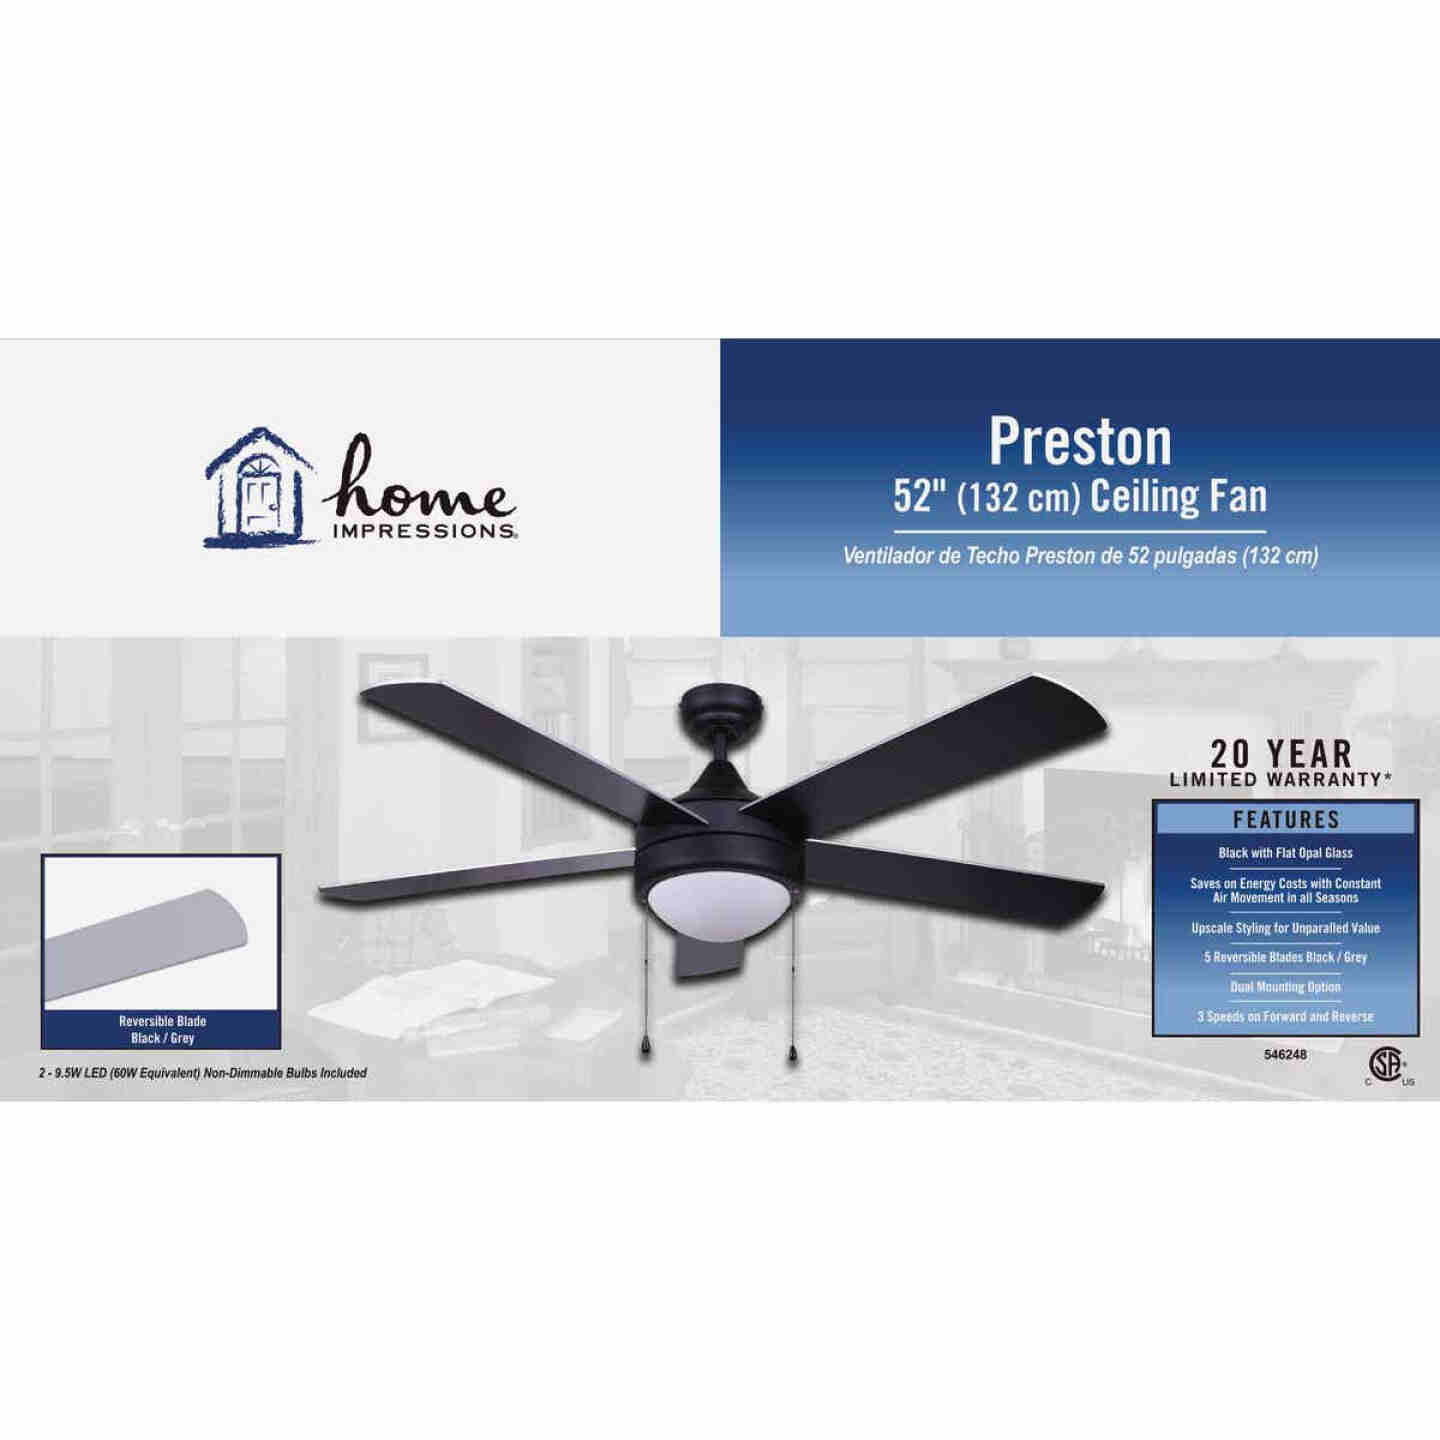 Home Impressions Preston 52 In. Black Ceiling Fan with Light Kit Image 2